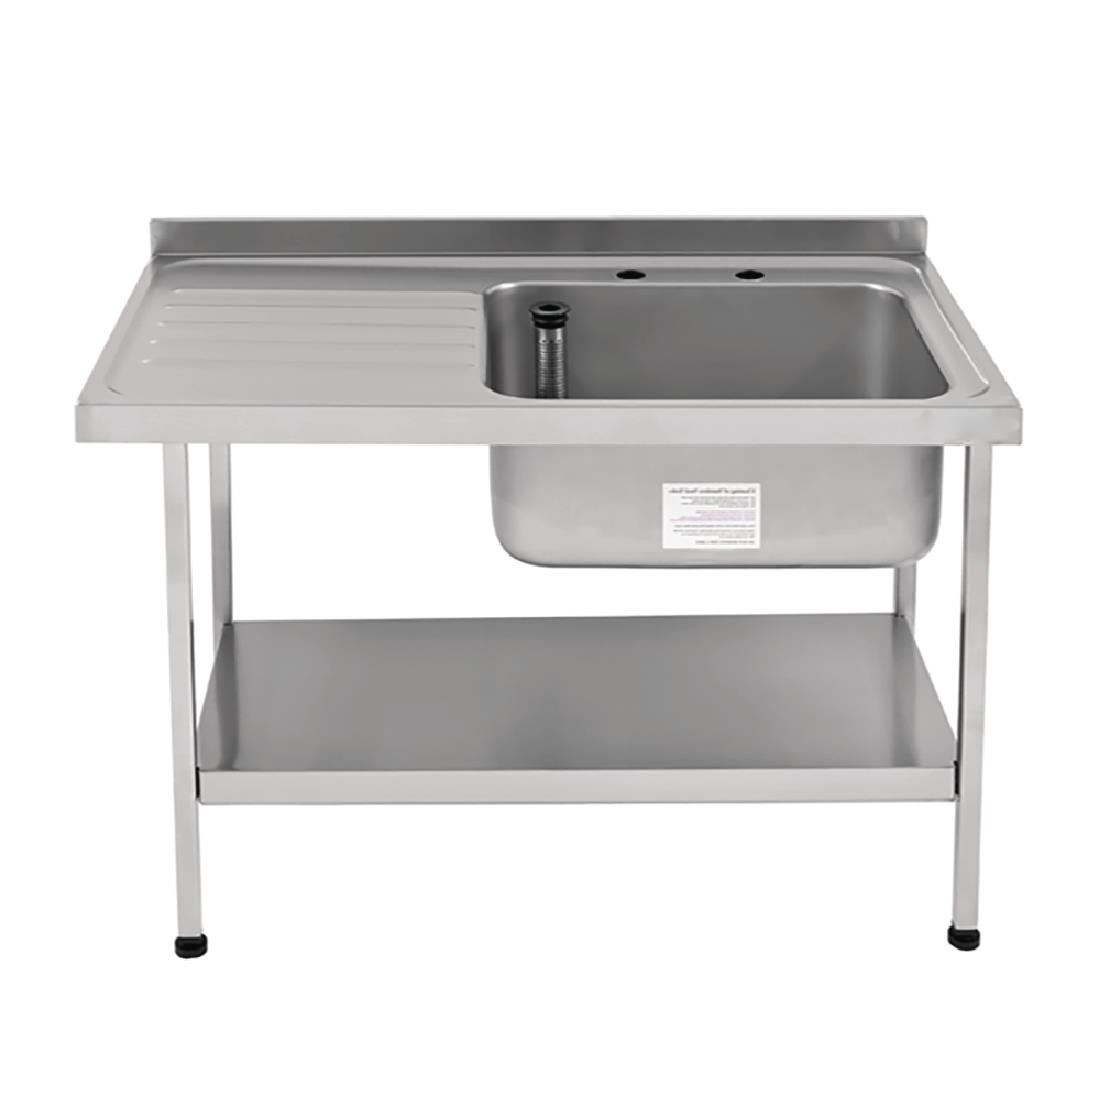 Image of Franke Sissons Self Assembly Stainless Steel Sink Left Hand Drainer 1200x650mm